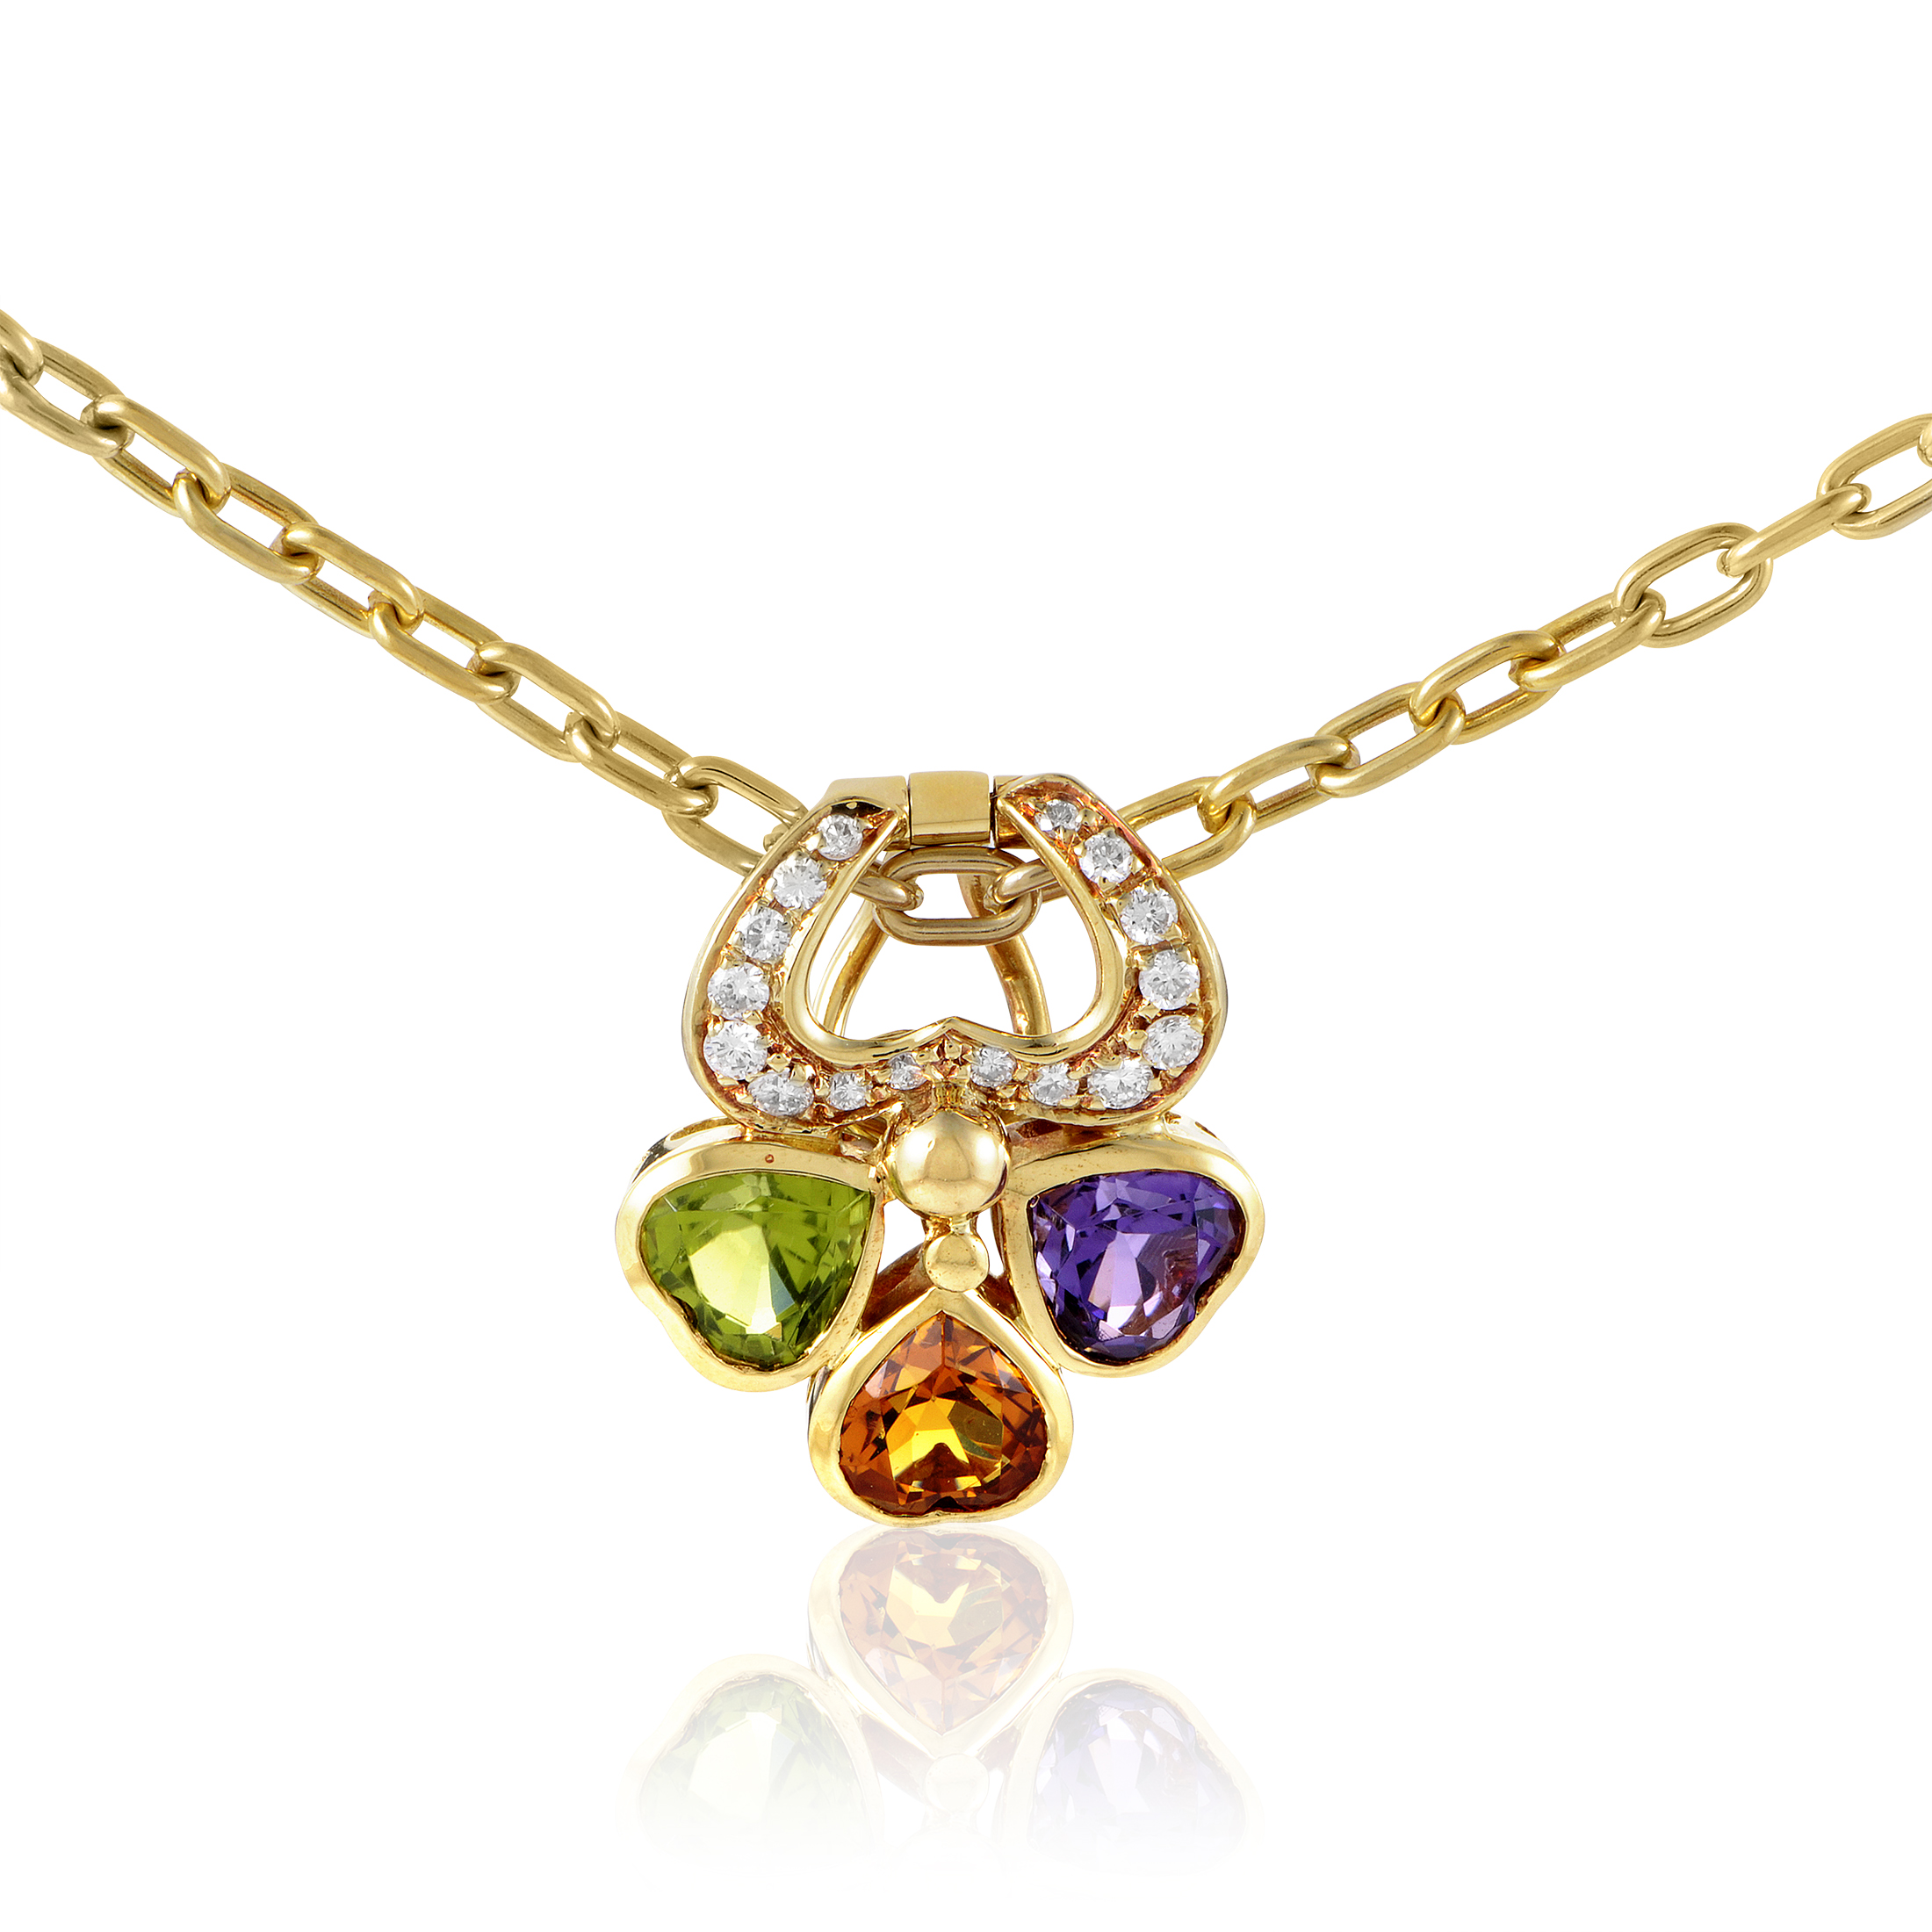 Pomellato Women's 18K Yellow Gold Diamond & Multi-Gemstone Pendant Necklace